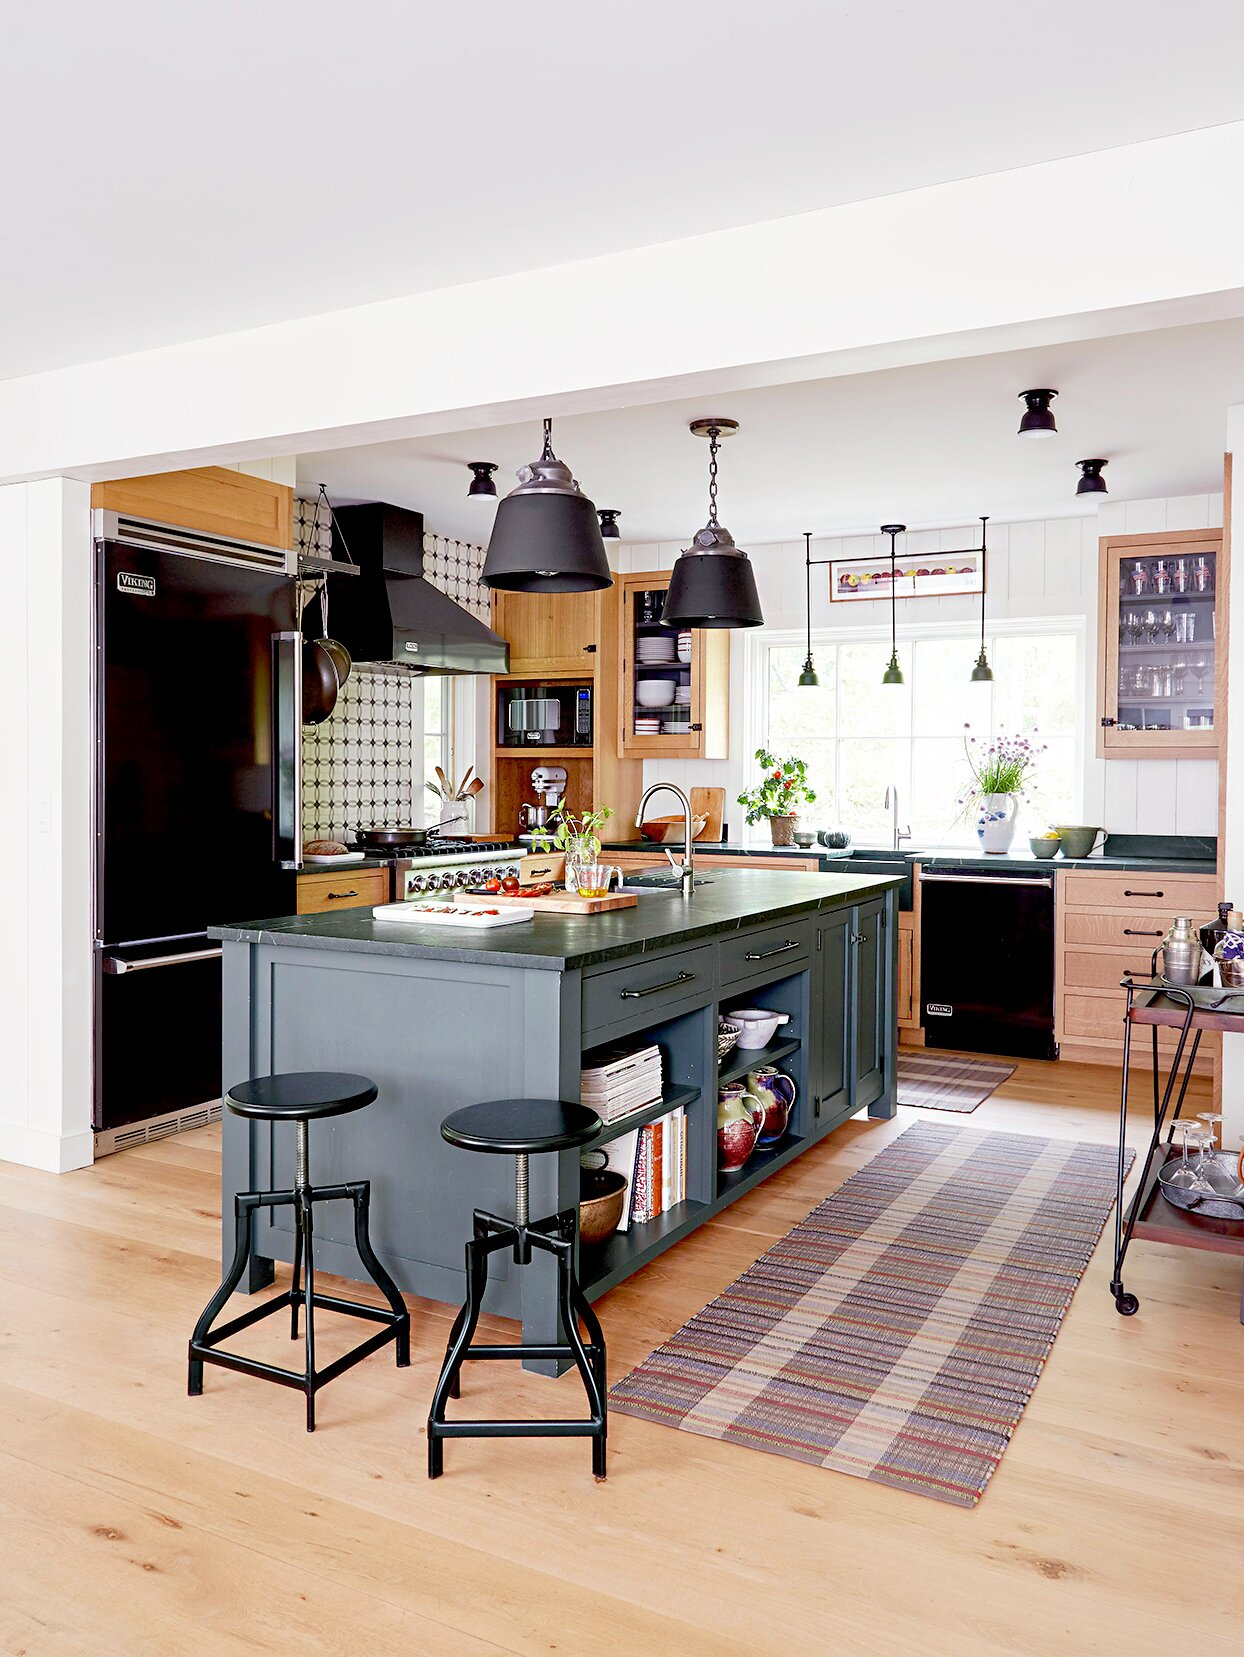 Kitchen with black island and stools